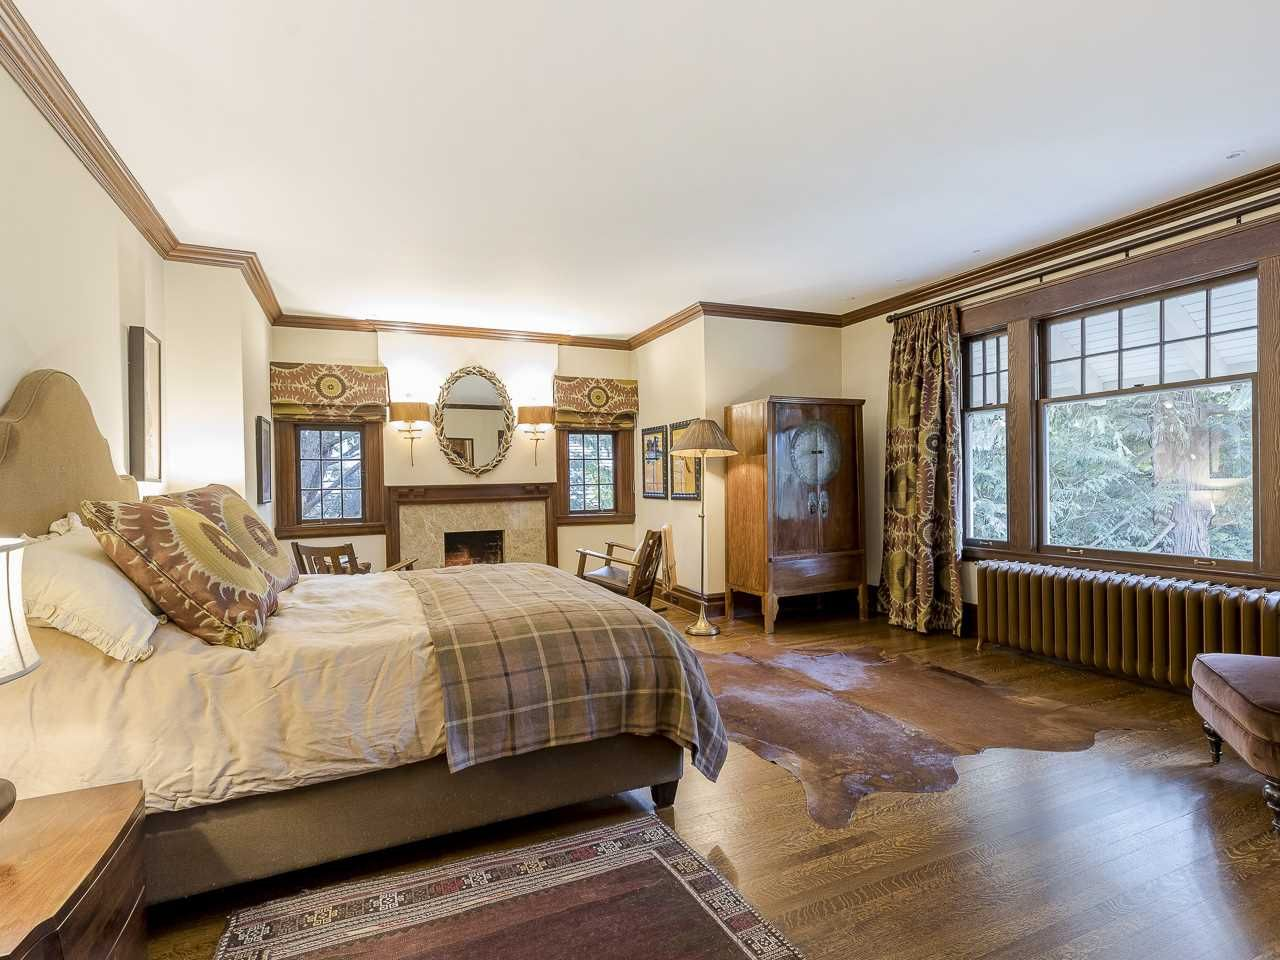 Photo 15: Photos: 3369 THE CRESCENT in Vancouver: Shaughnessy House for sale (Vancouver West)  : MLS®# R2534743